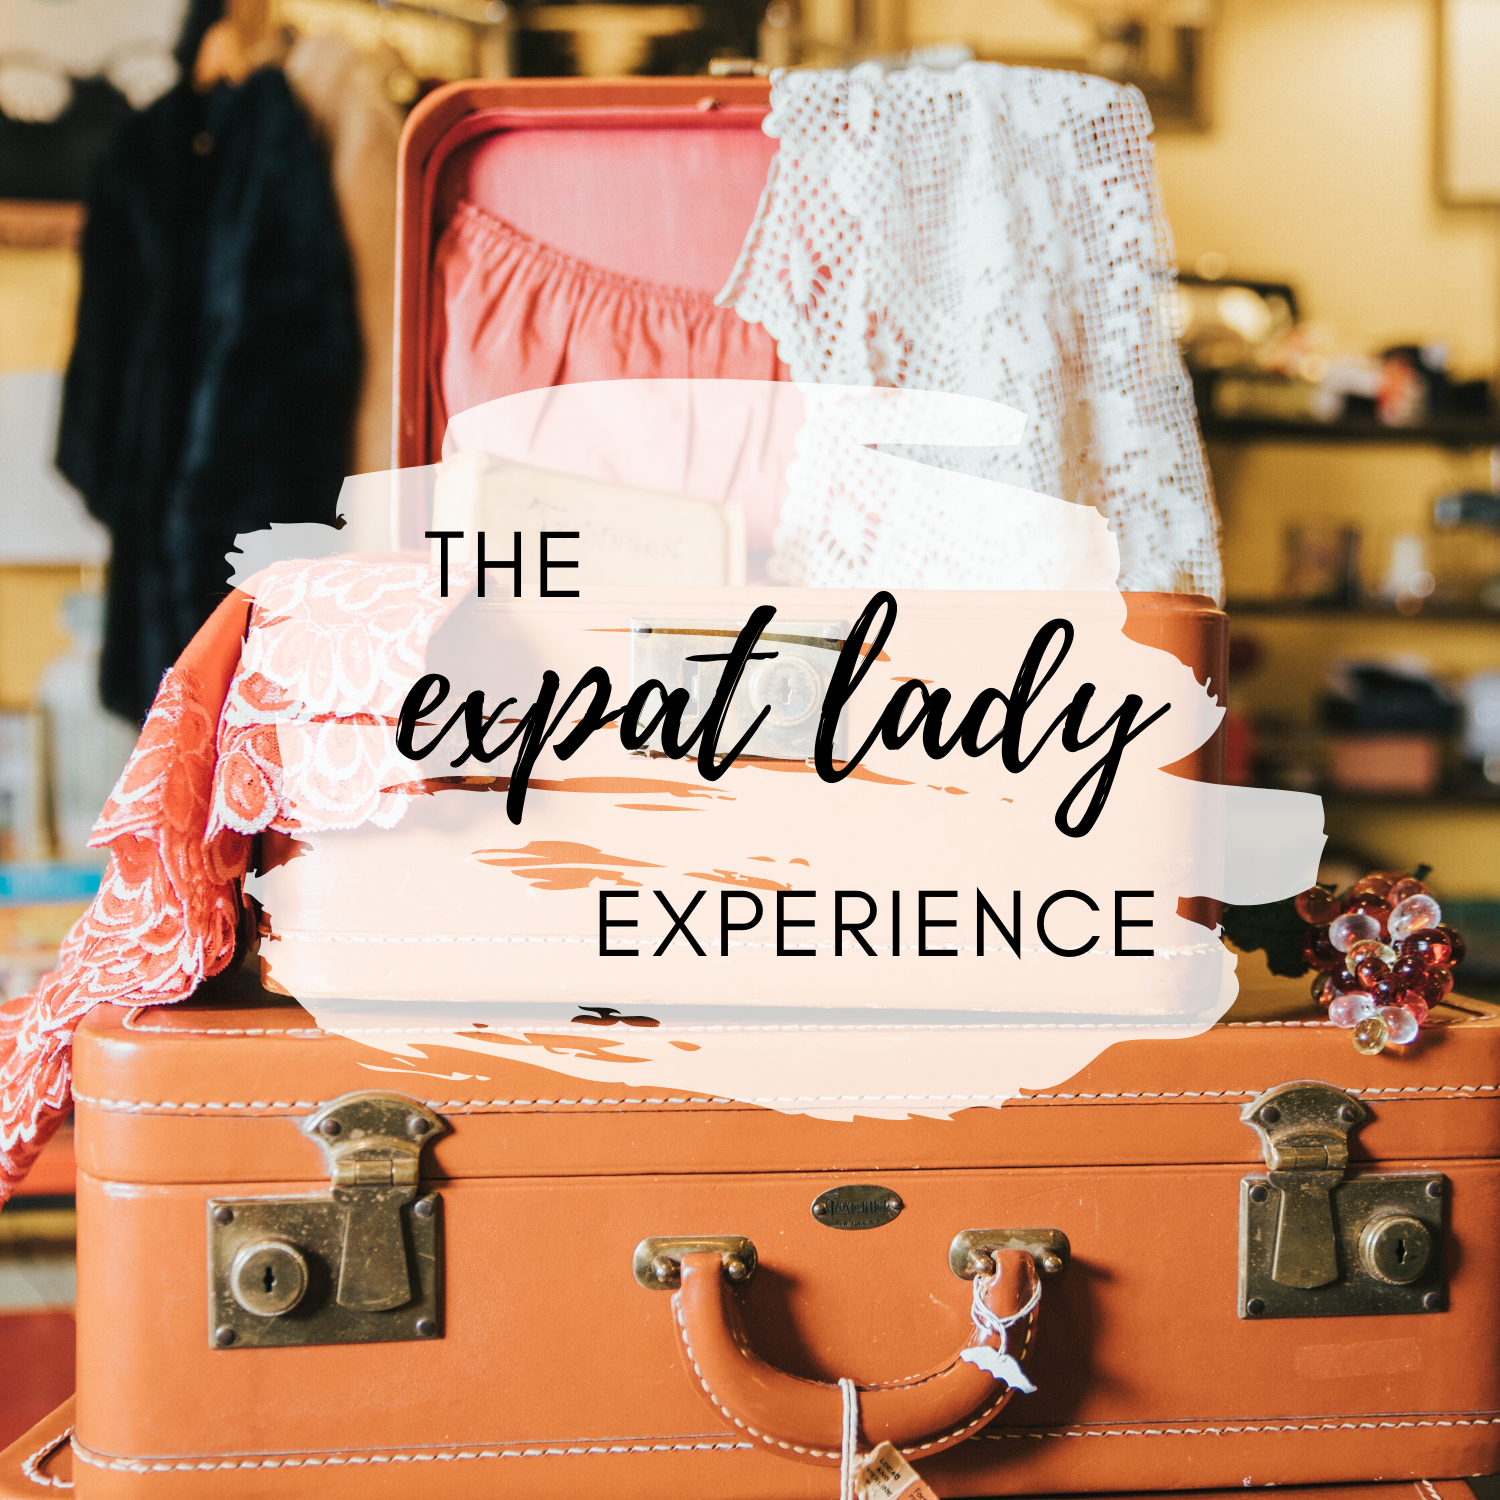 The Expat Lady Experience show art